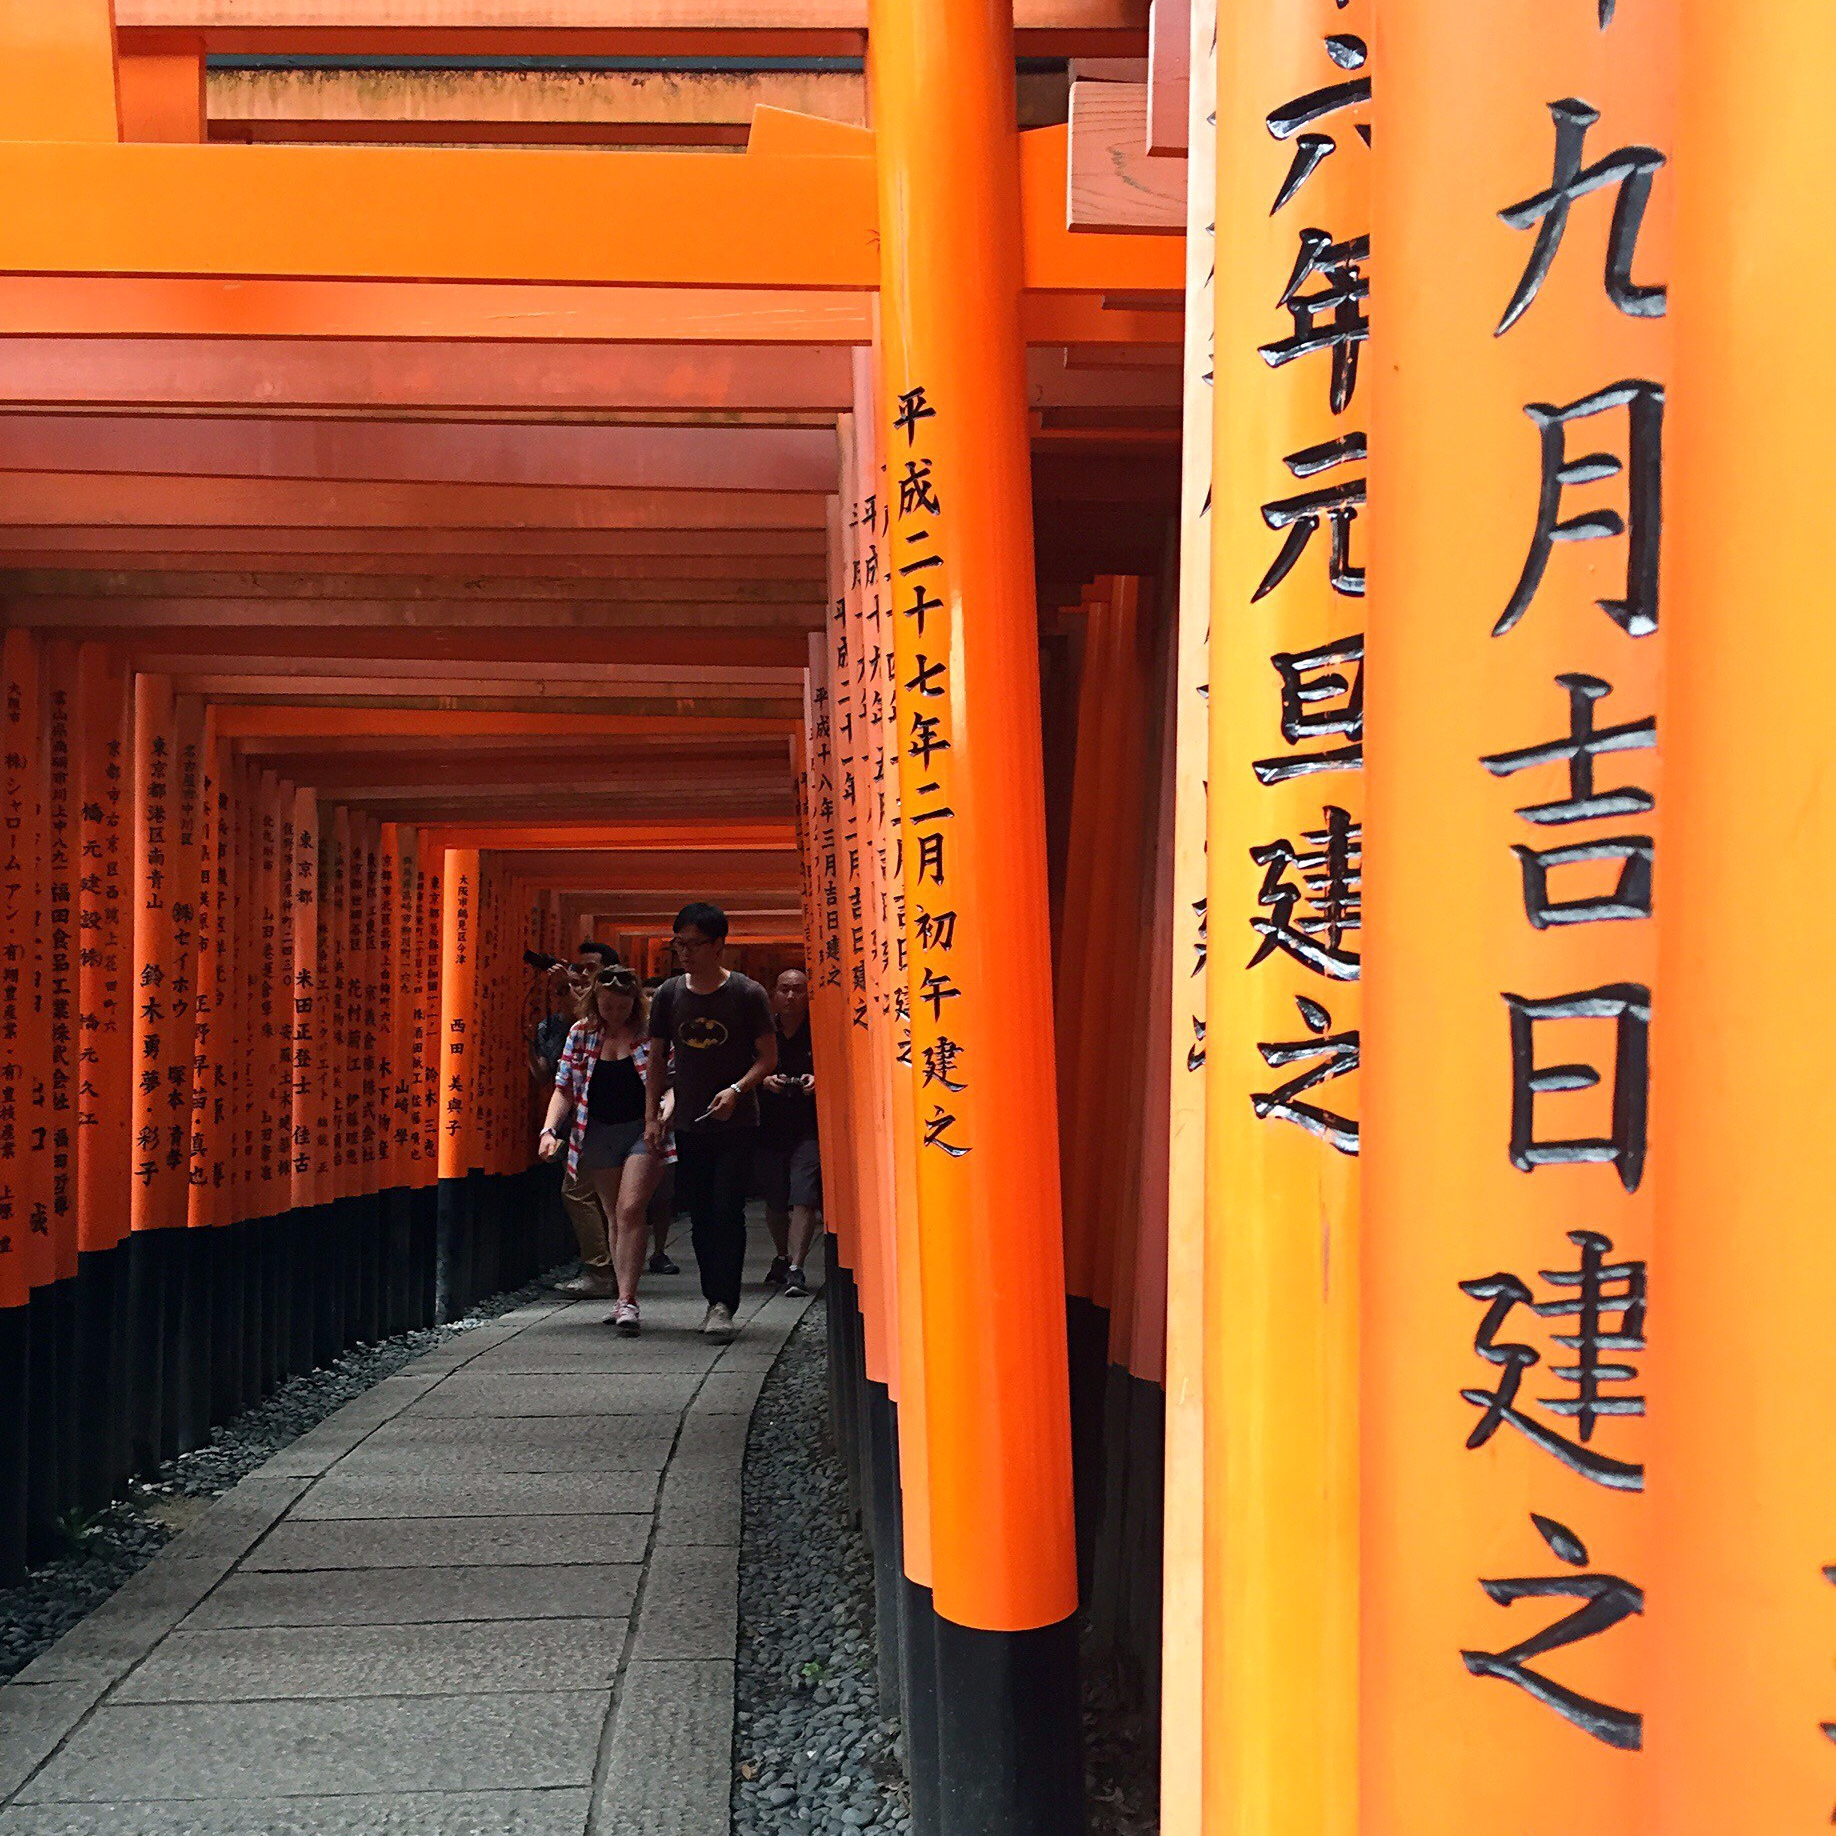 The names of individuals, businesses and celebrities are inscribed on the pillars of the torii gates.